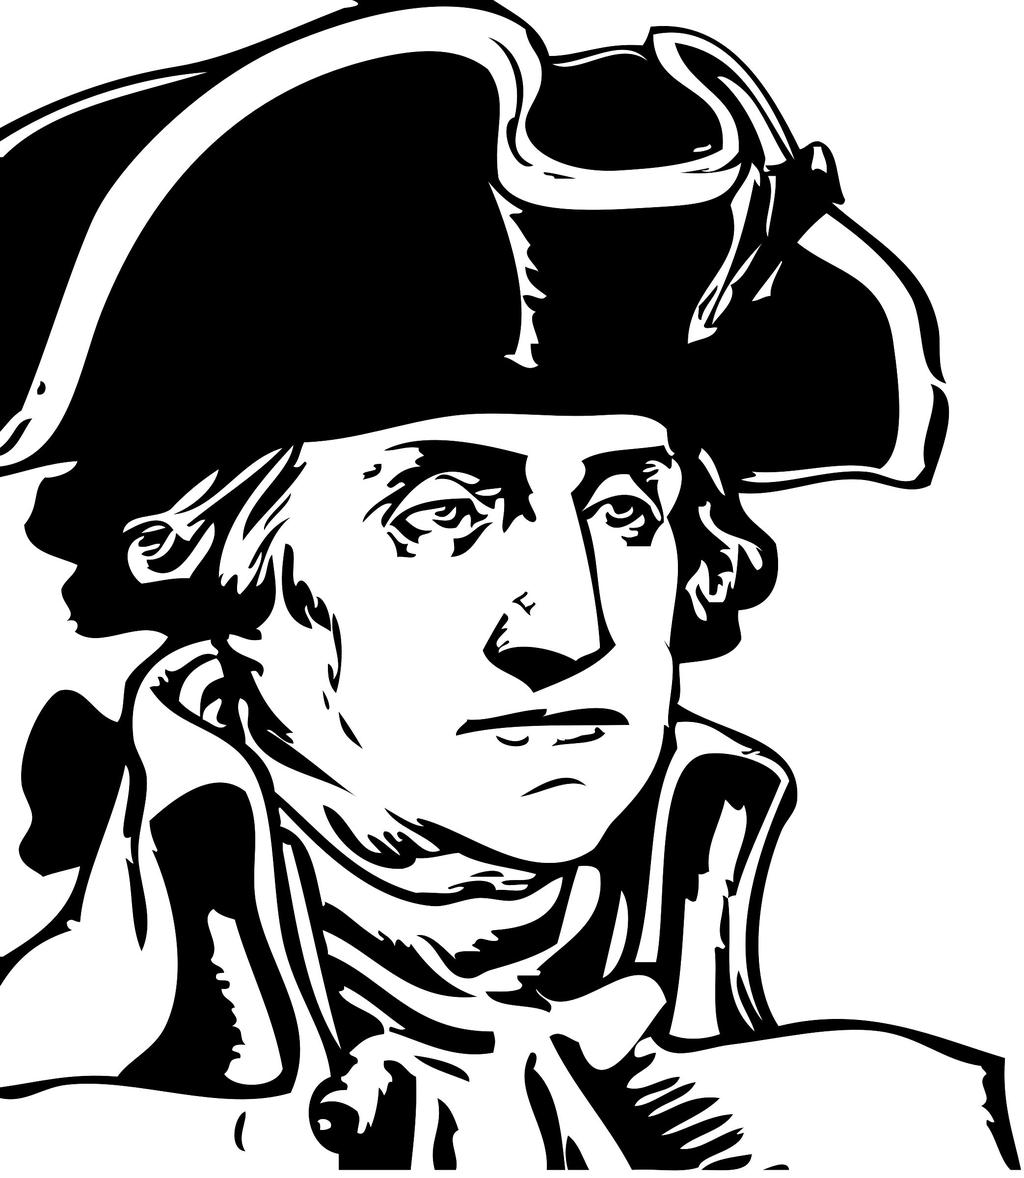 George washington coloring pages ing linear